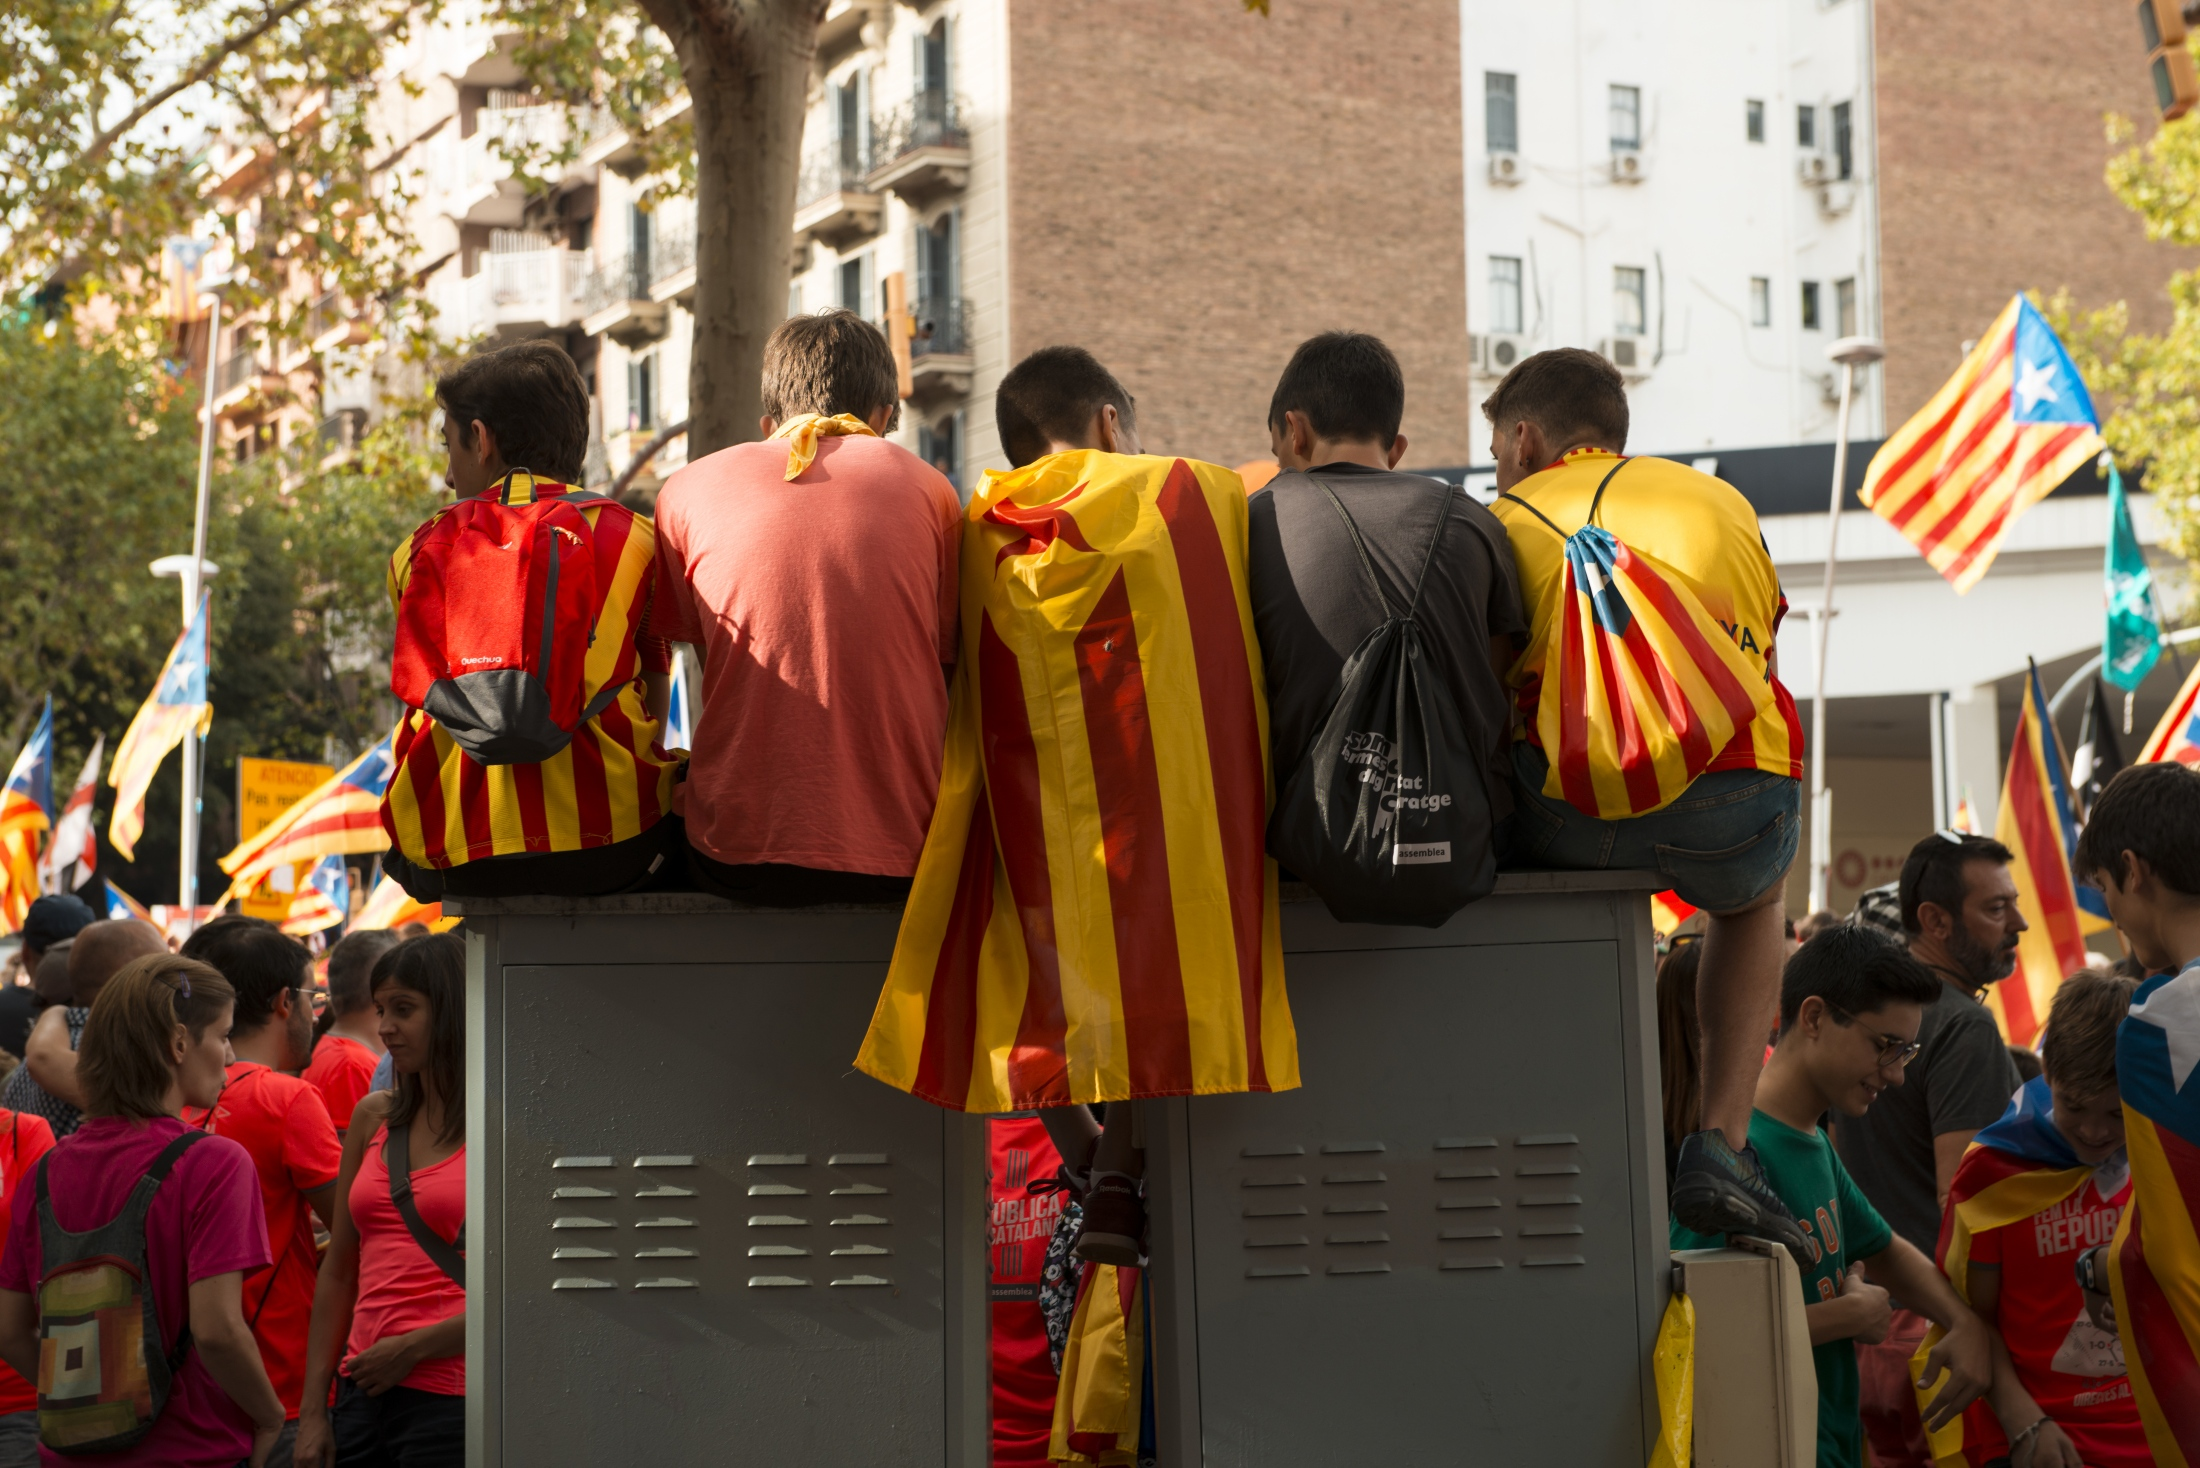 Photography image - 09.11.18 Over 1 million Cataluñas march in Barcelona to demand independence from España and the release of political prisoners